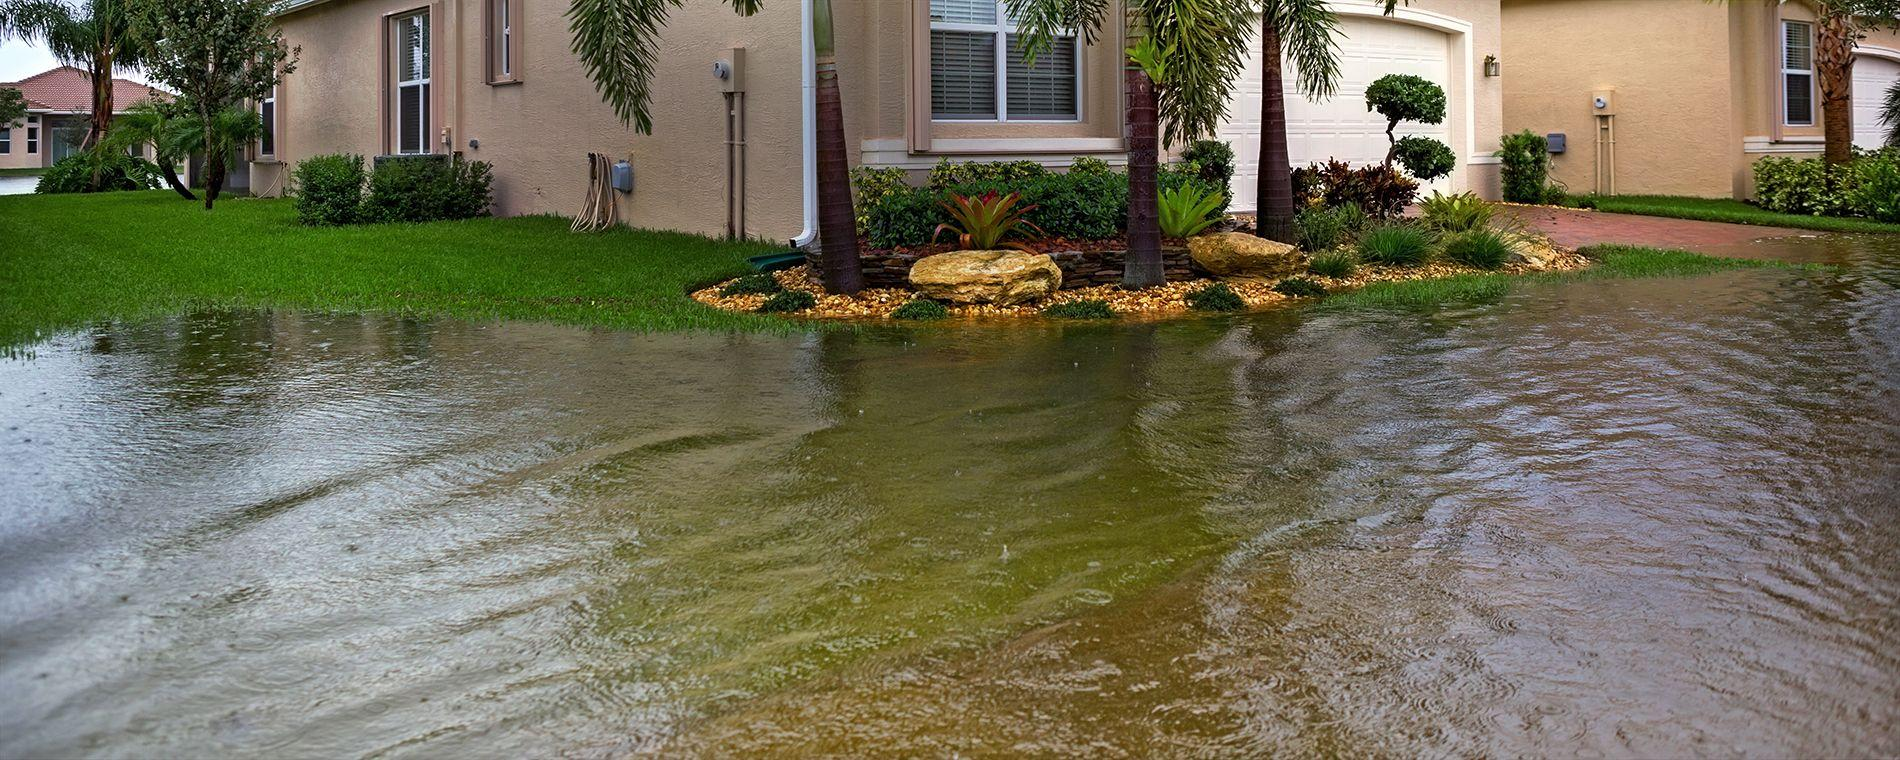 Flood damage is not covered by homeowners insurance